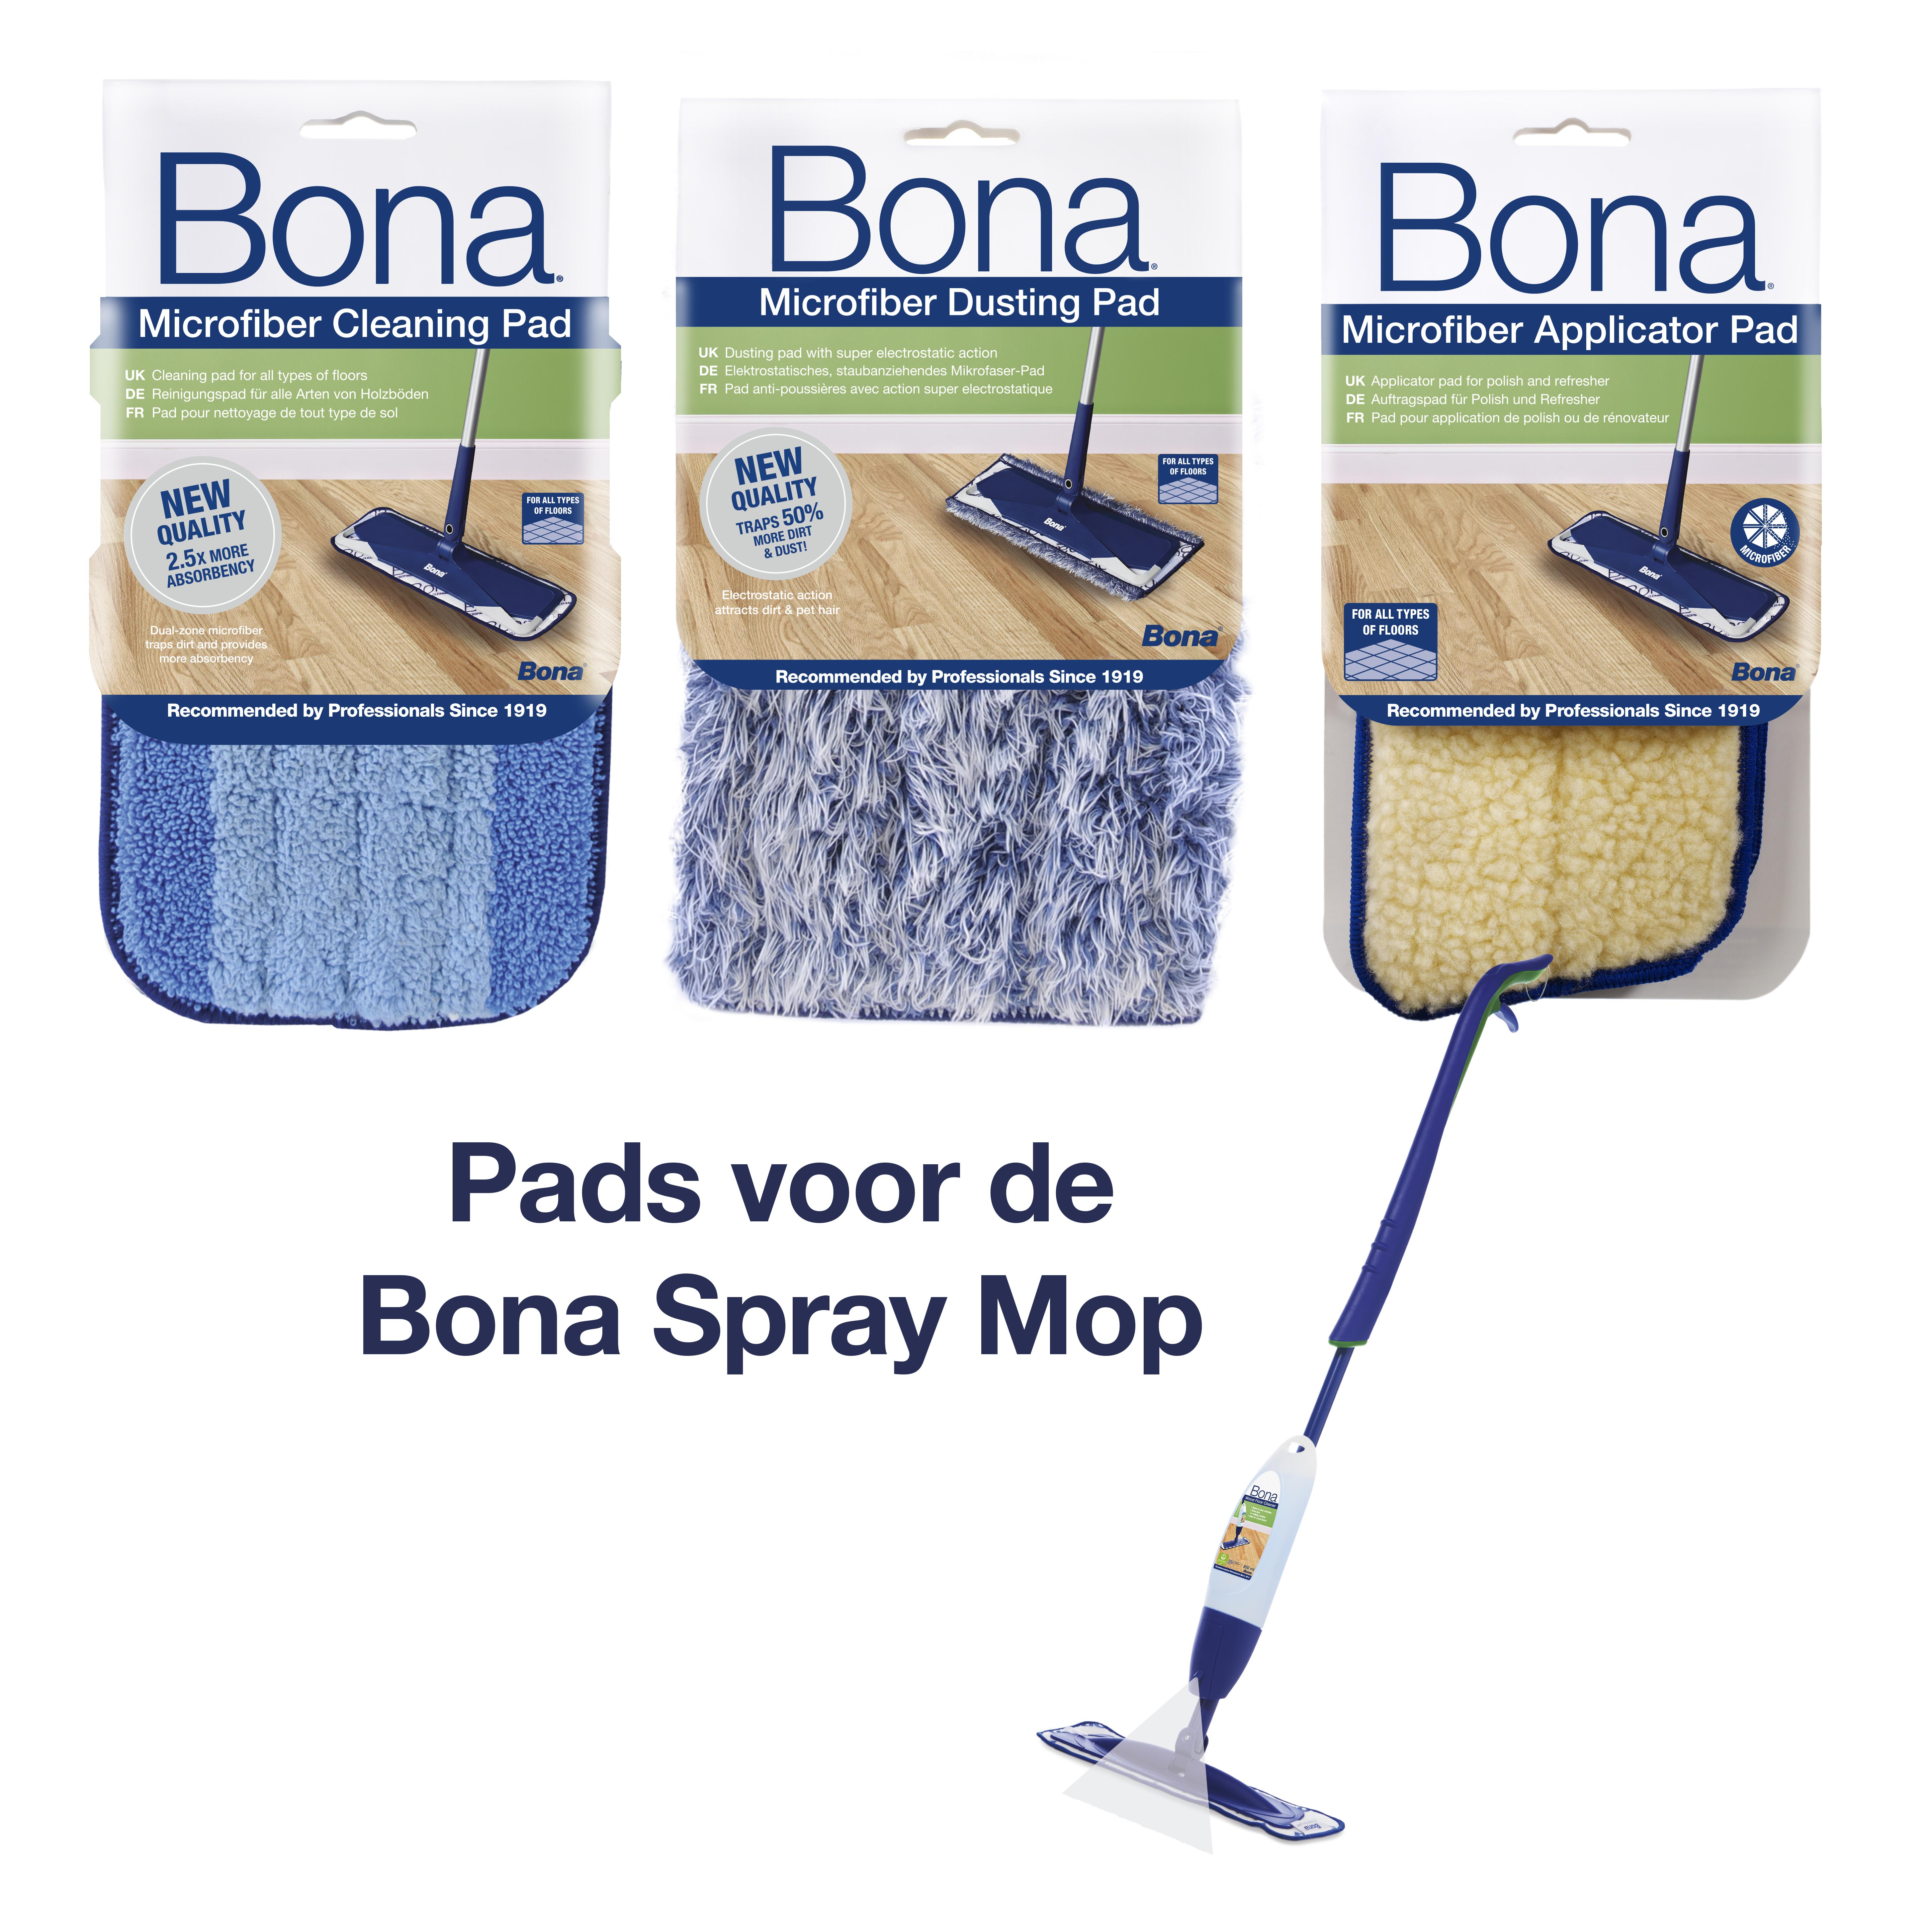 SprayMop2020/Bona_Spray_Mop-6.jpg